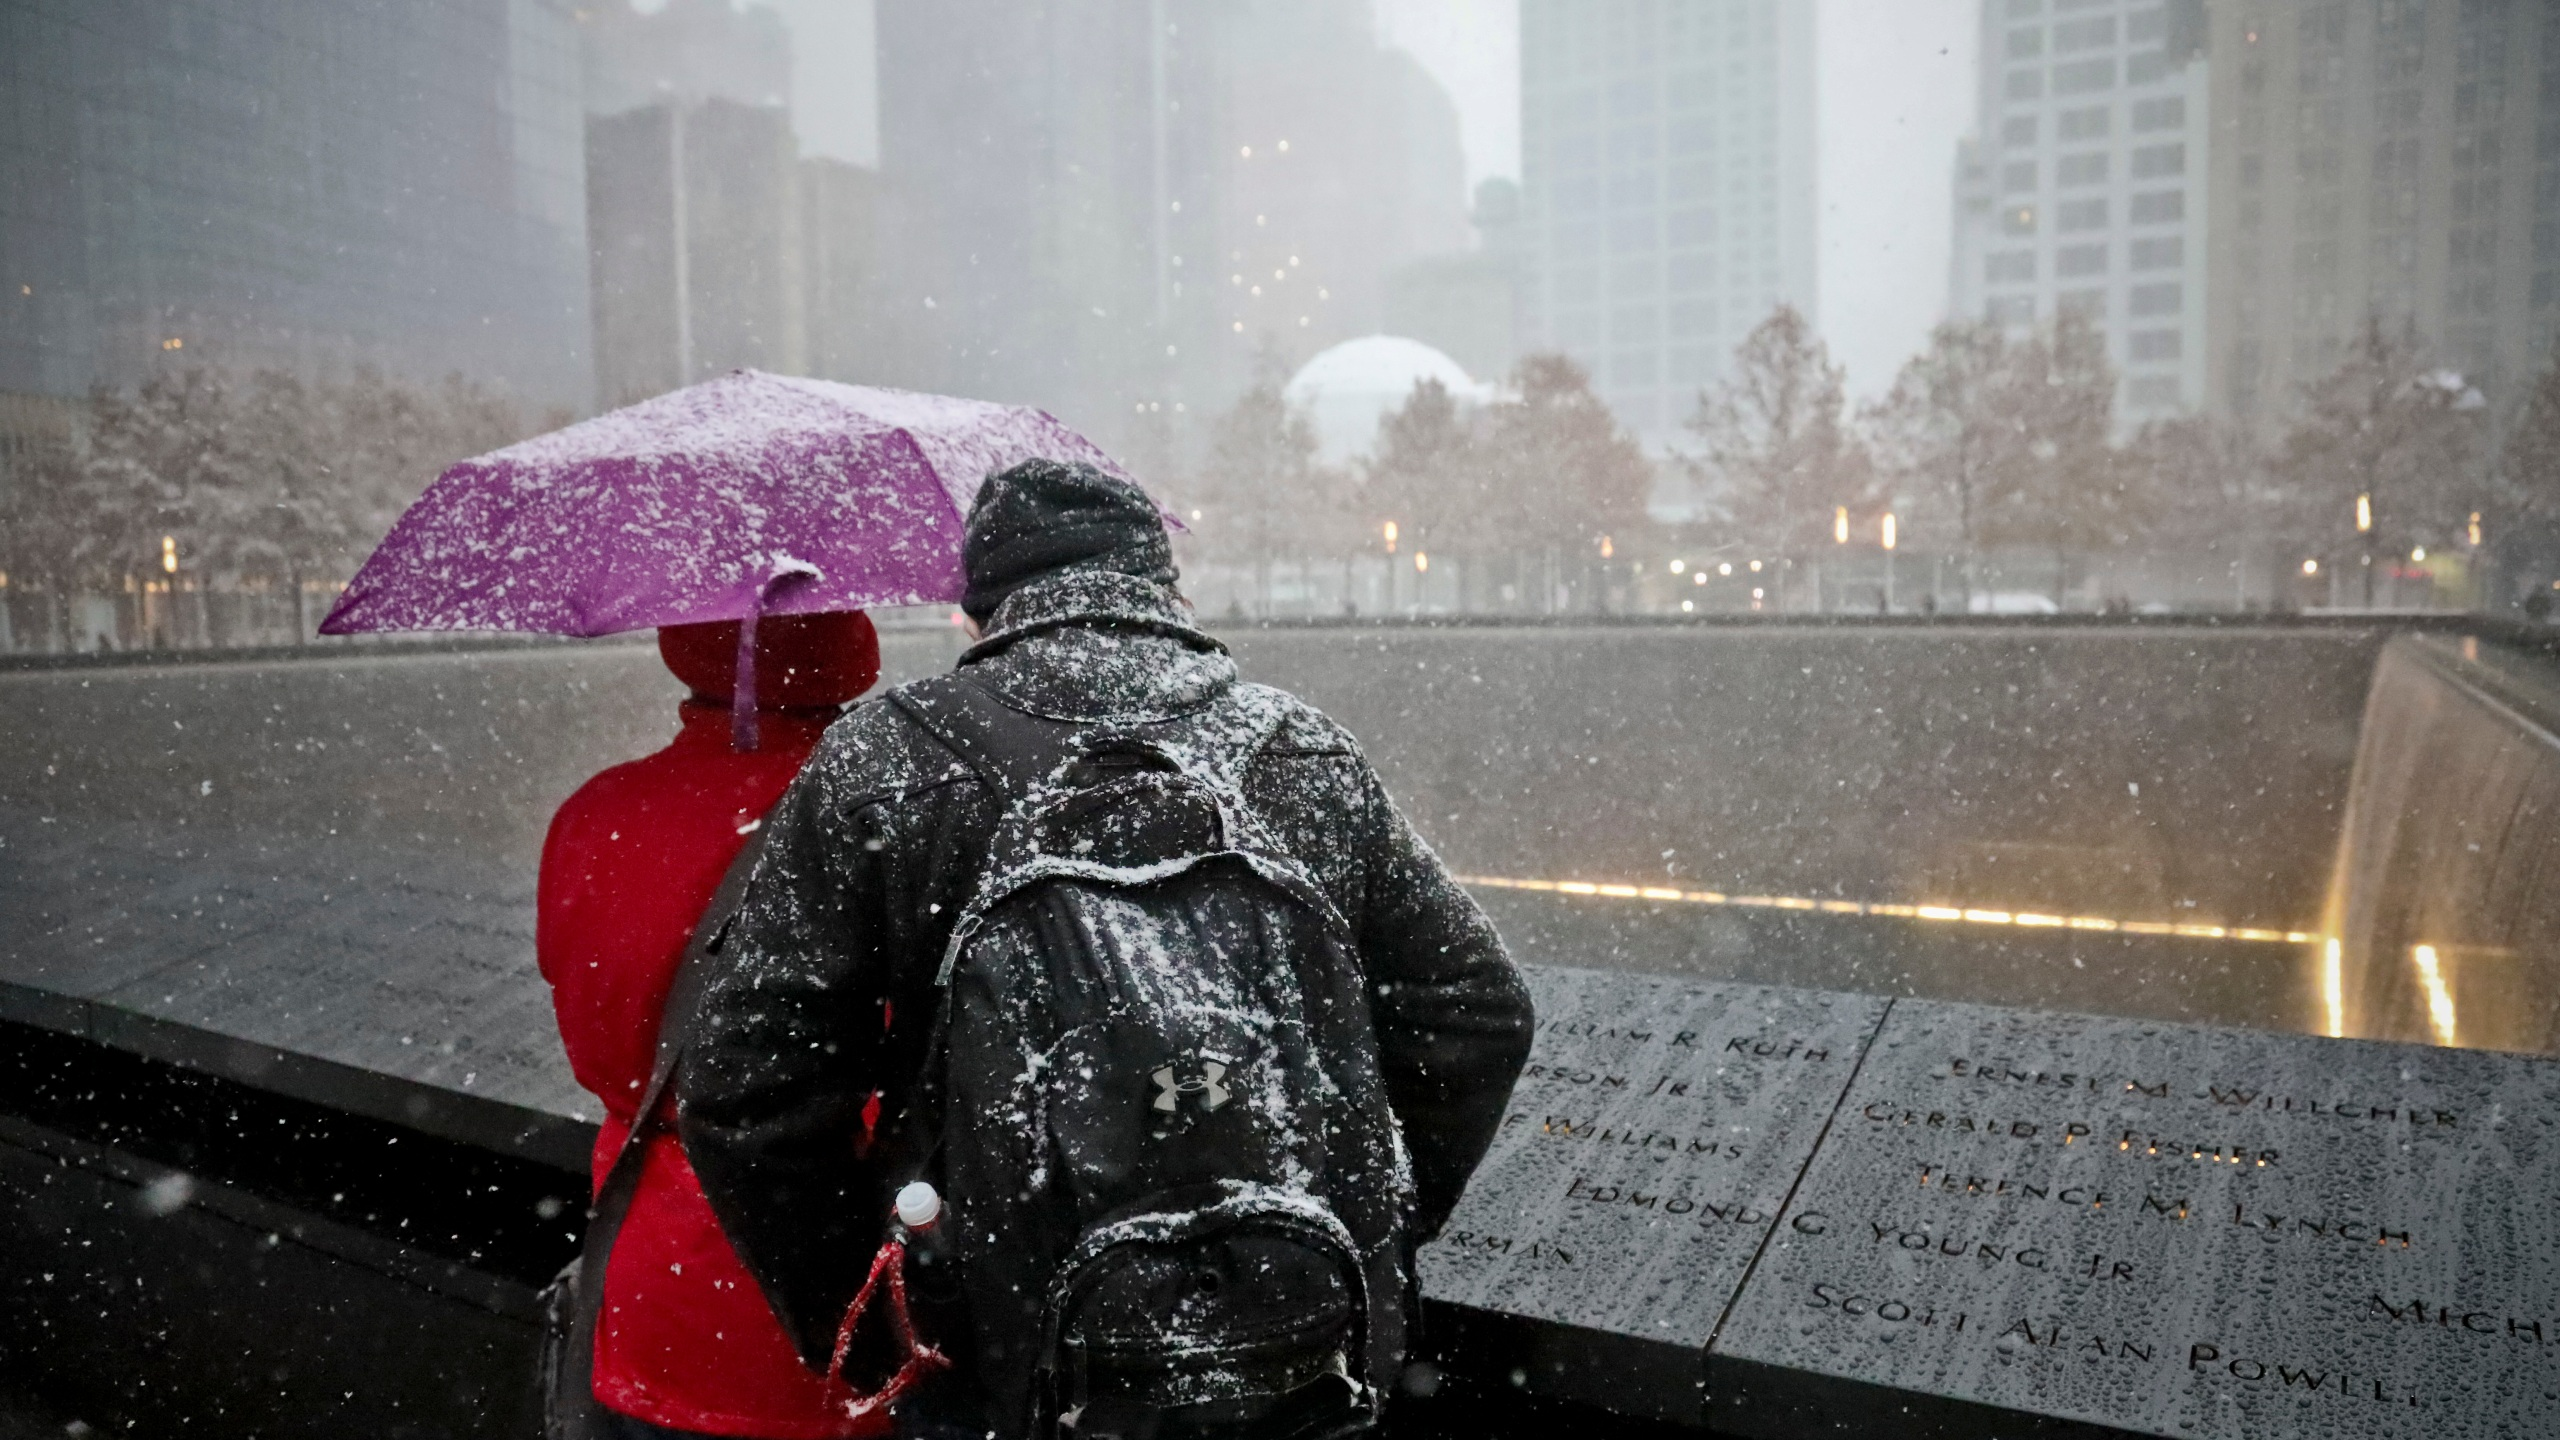 New_York_Daily_Life_Wintry_Weather_96005-159532.jpg56746709